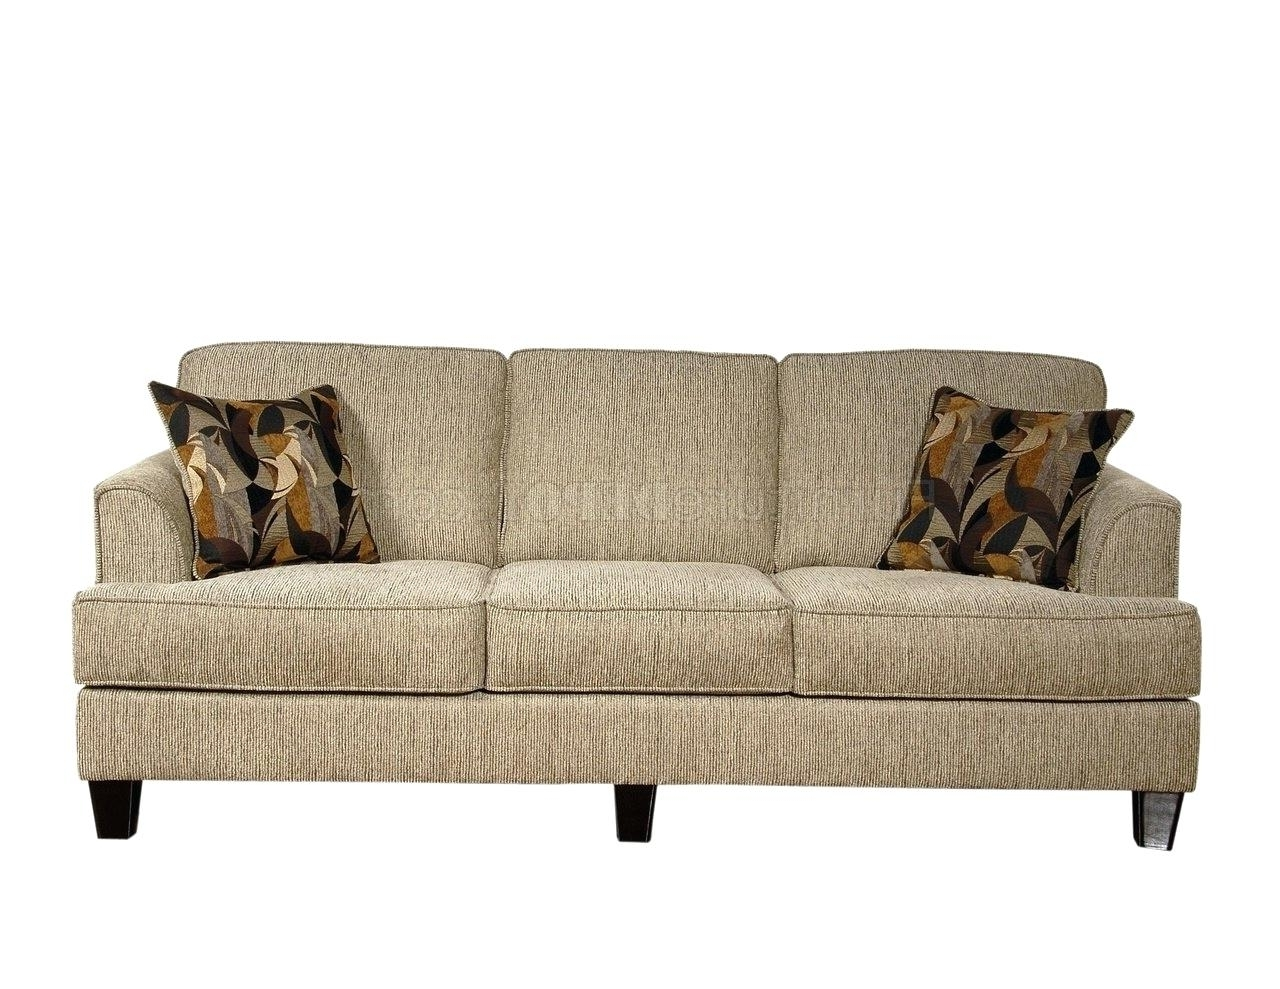 Clarksville Tn Sectional Sofas With Most Up To Date Sofa : 1920Sofa And Chairet Blueets In Leather Onale Casa Evora (View 6 of 15)